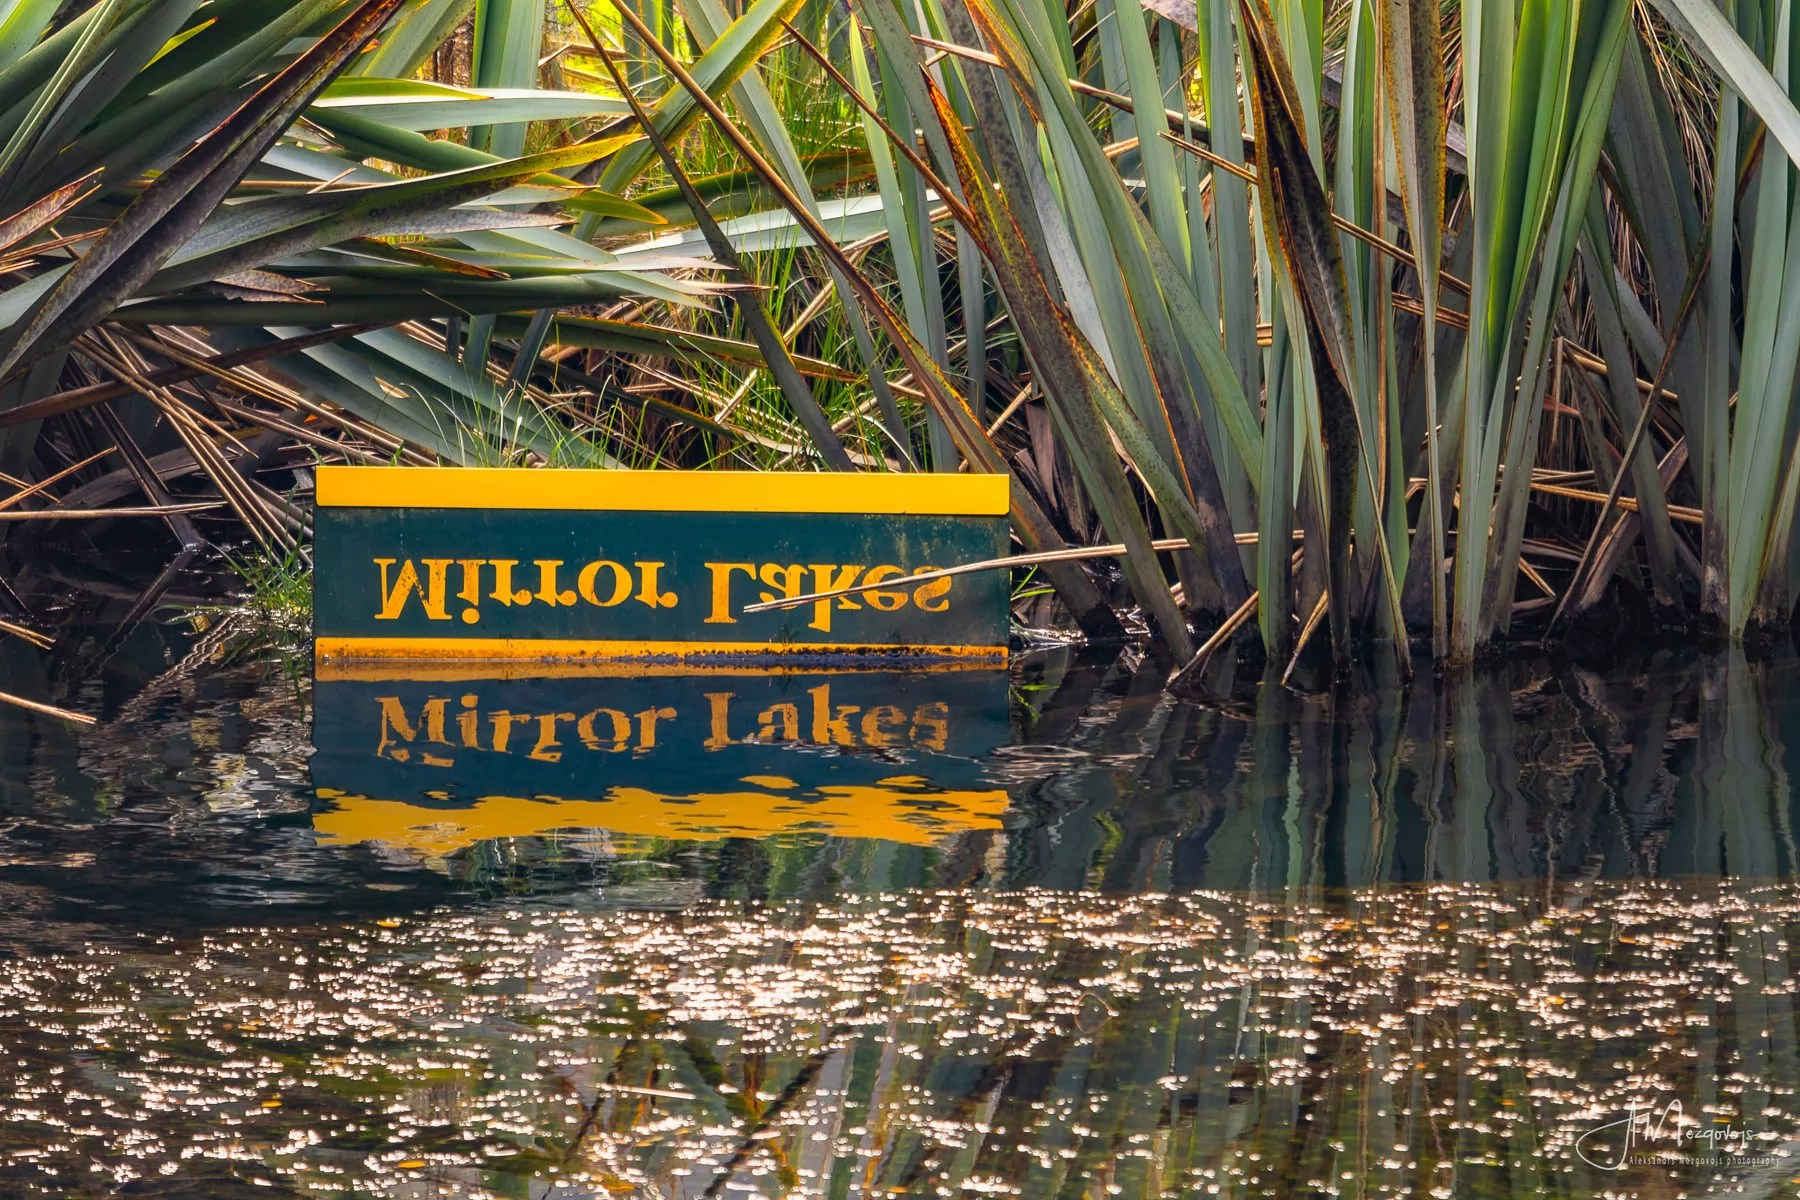 A typical photo from the Mirror Lakes